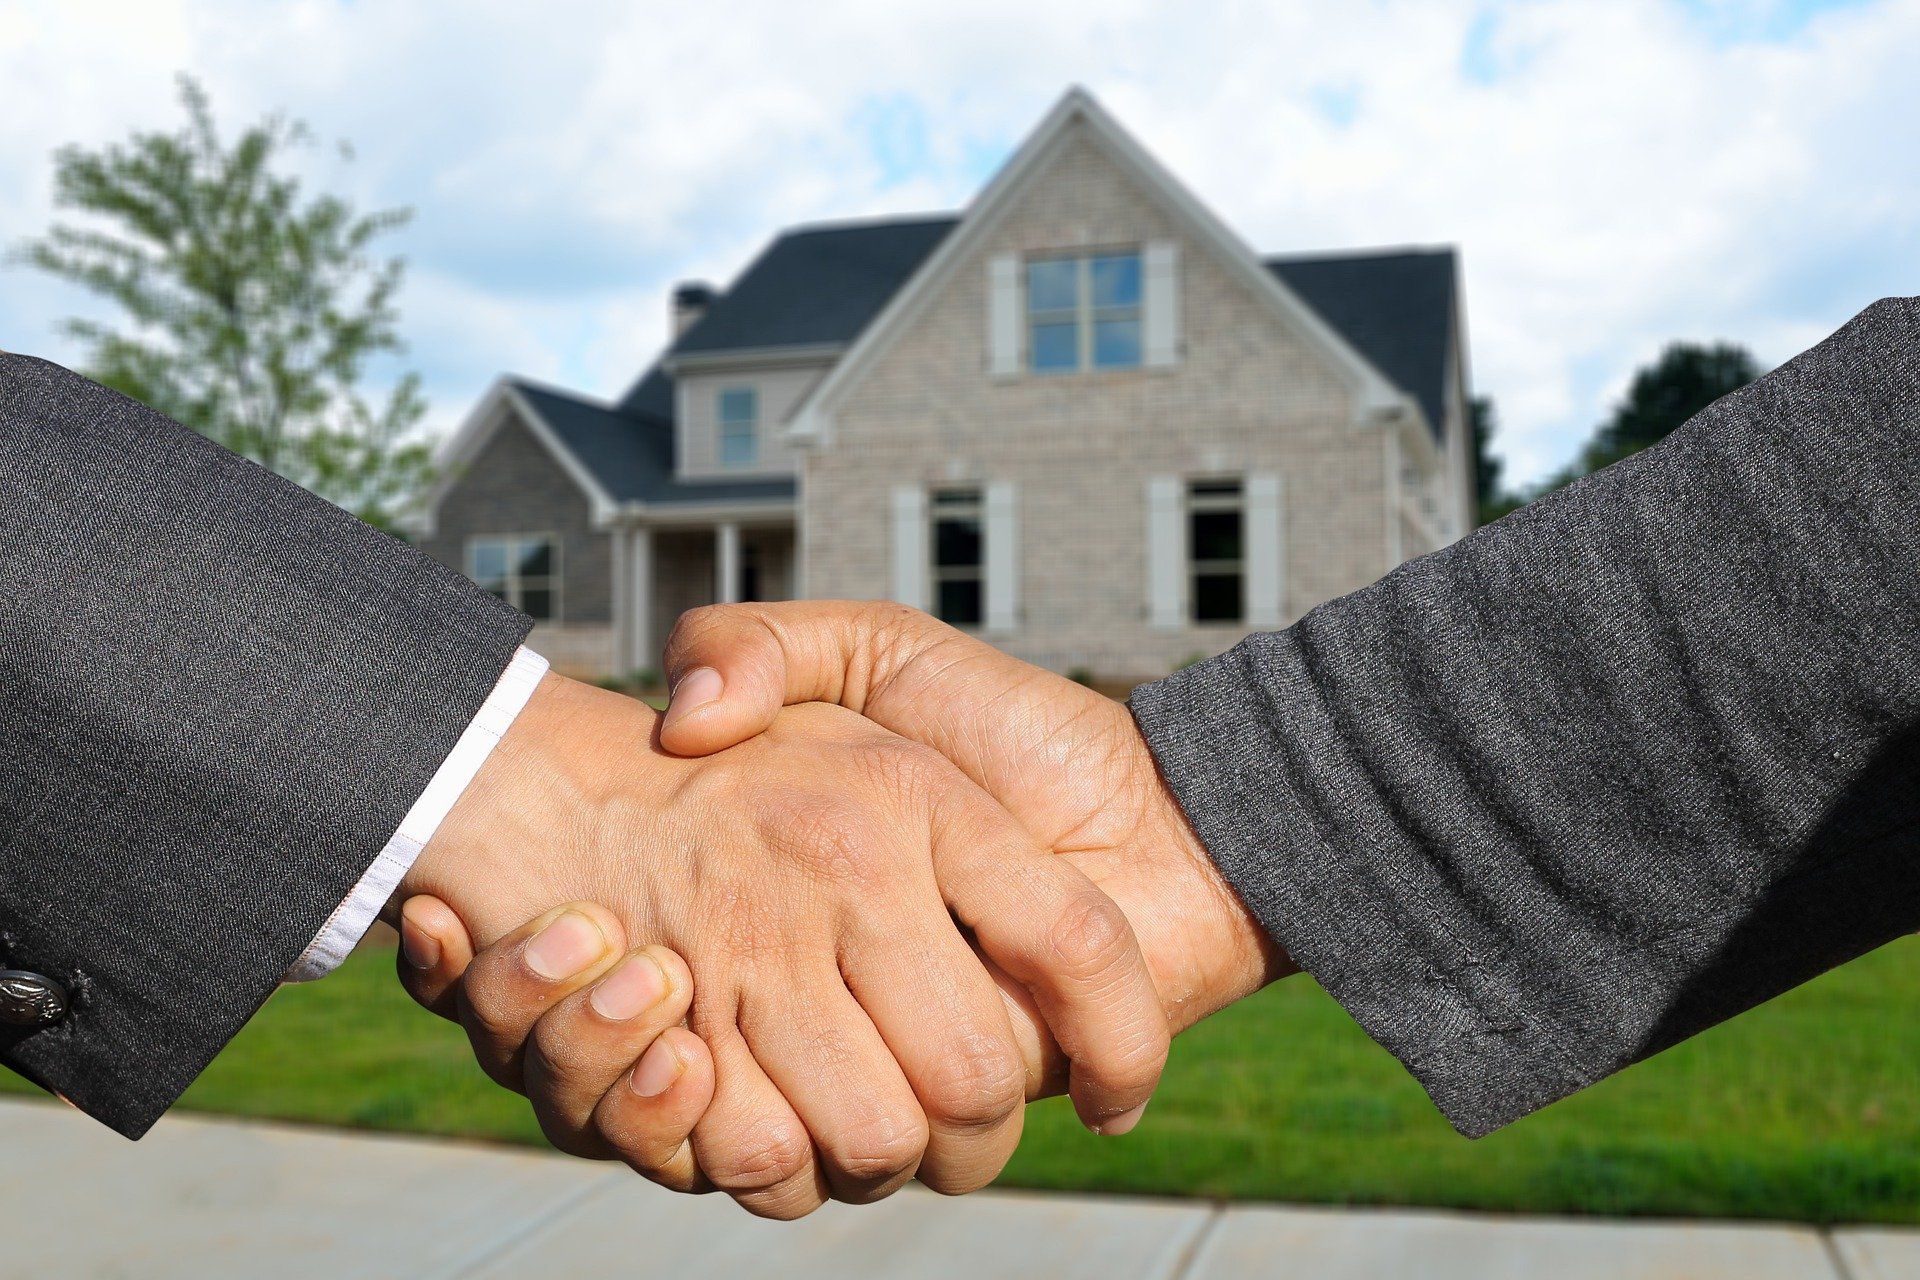 image - 6 Home Improvements Real Estate Agents Recommend for Maximum Roi